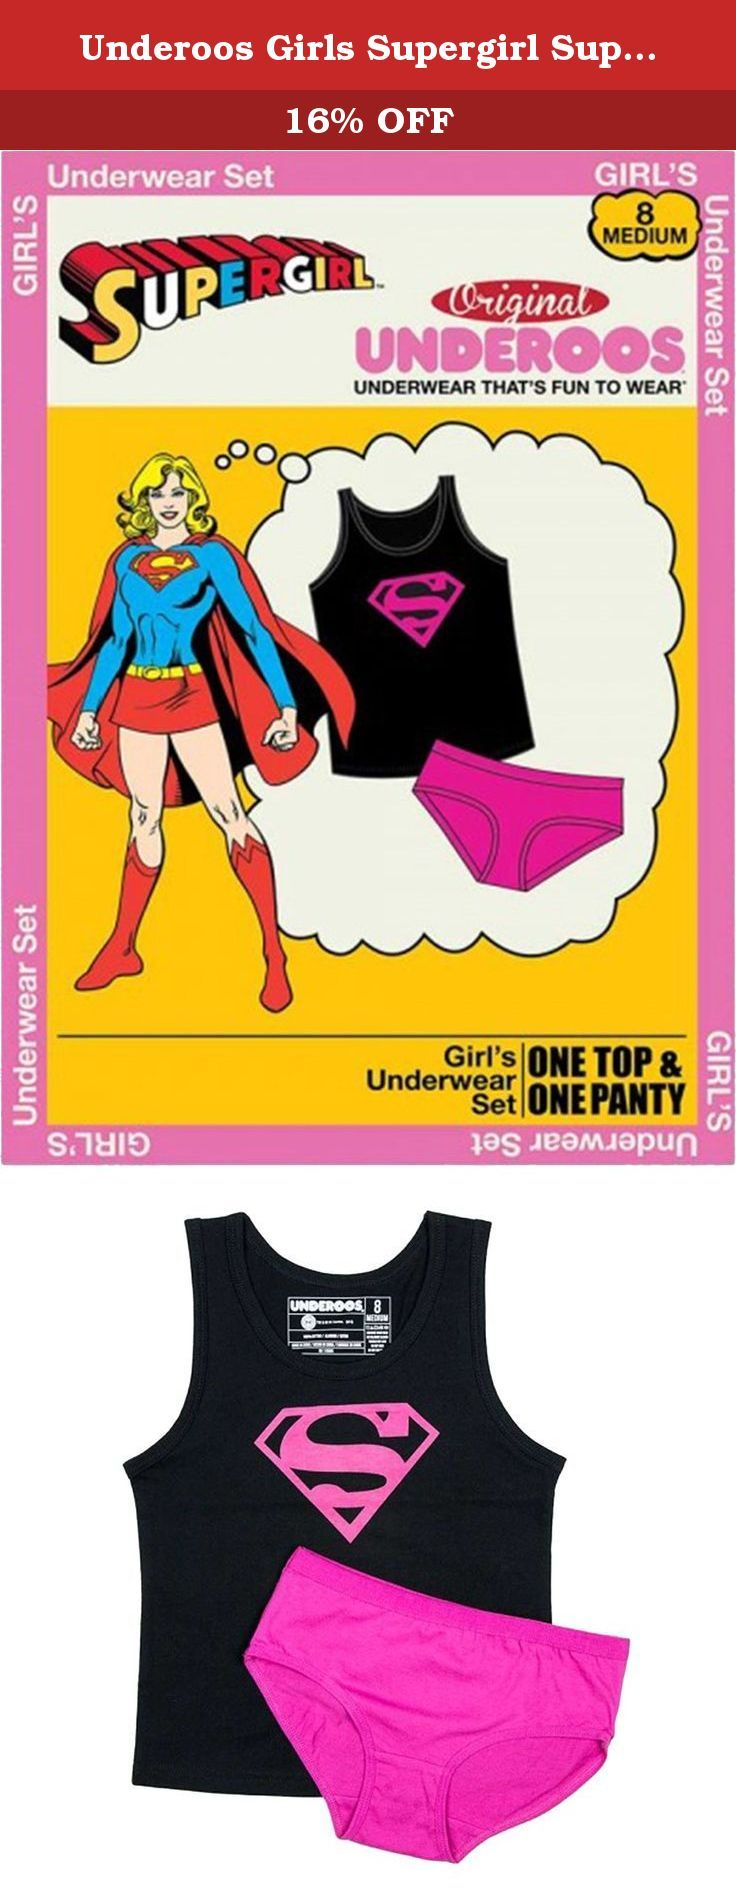 Underoos Girls Supergirl Superman Underwear Tank Set, Extra Small 4, Multi. Officially Licensed Supergirl Girls Underoos Underwear Set. This underwear set is made of 100% pre-shrunk cotton.